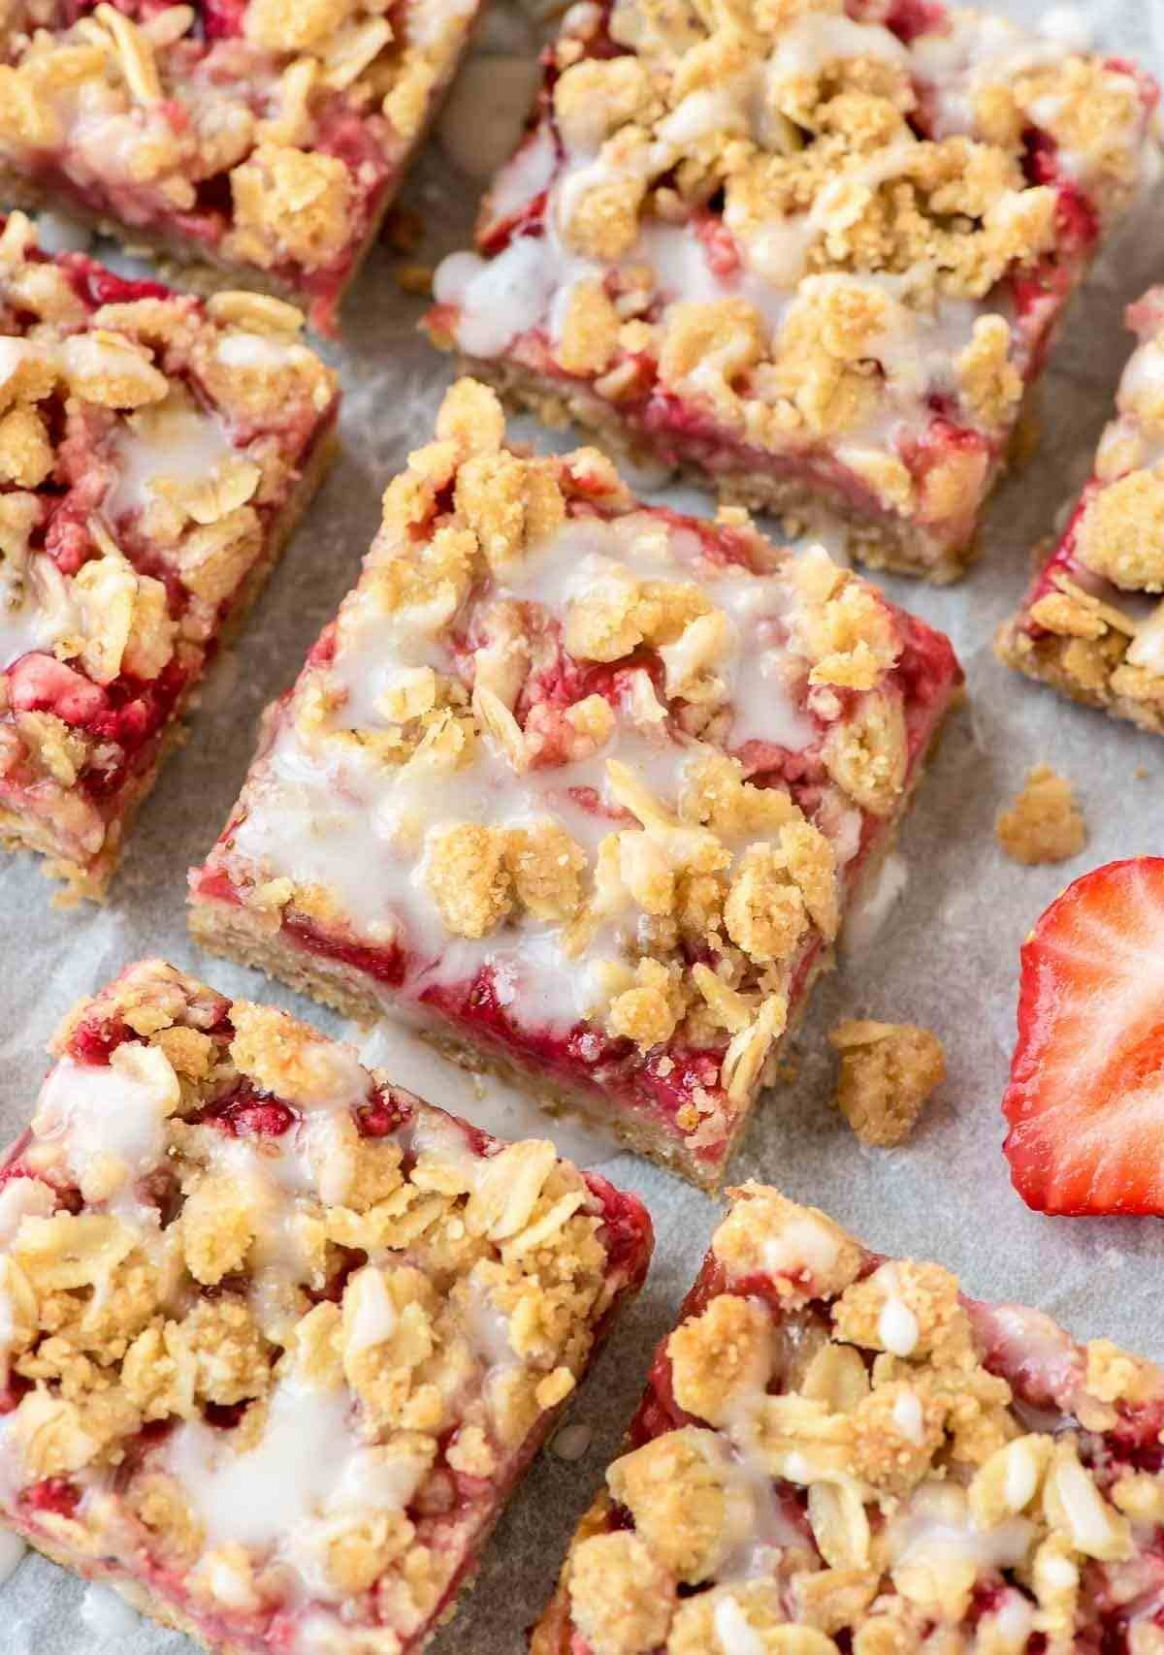 Healthy Strawberry Oatmeal Bars - Dessert Recipes You Can Make The Day Before